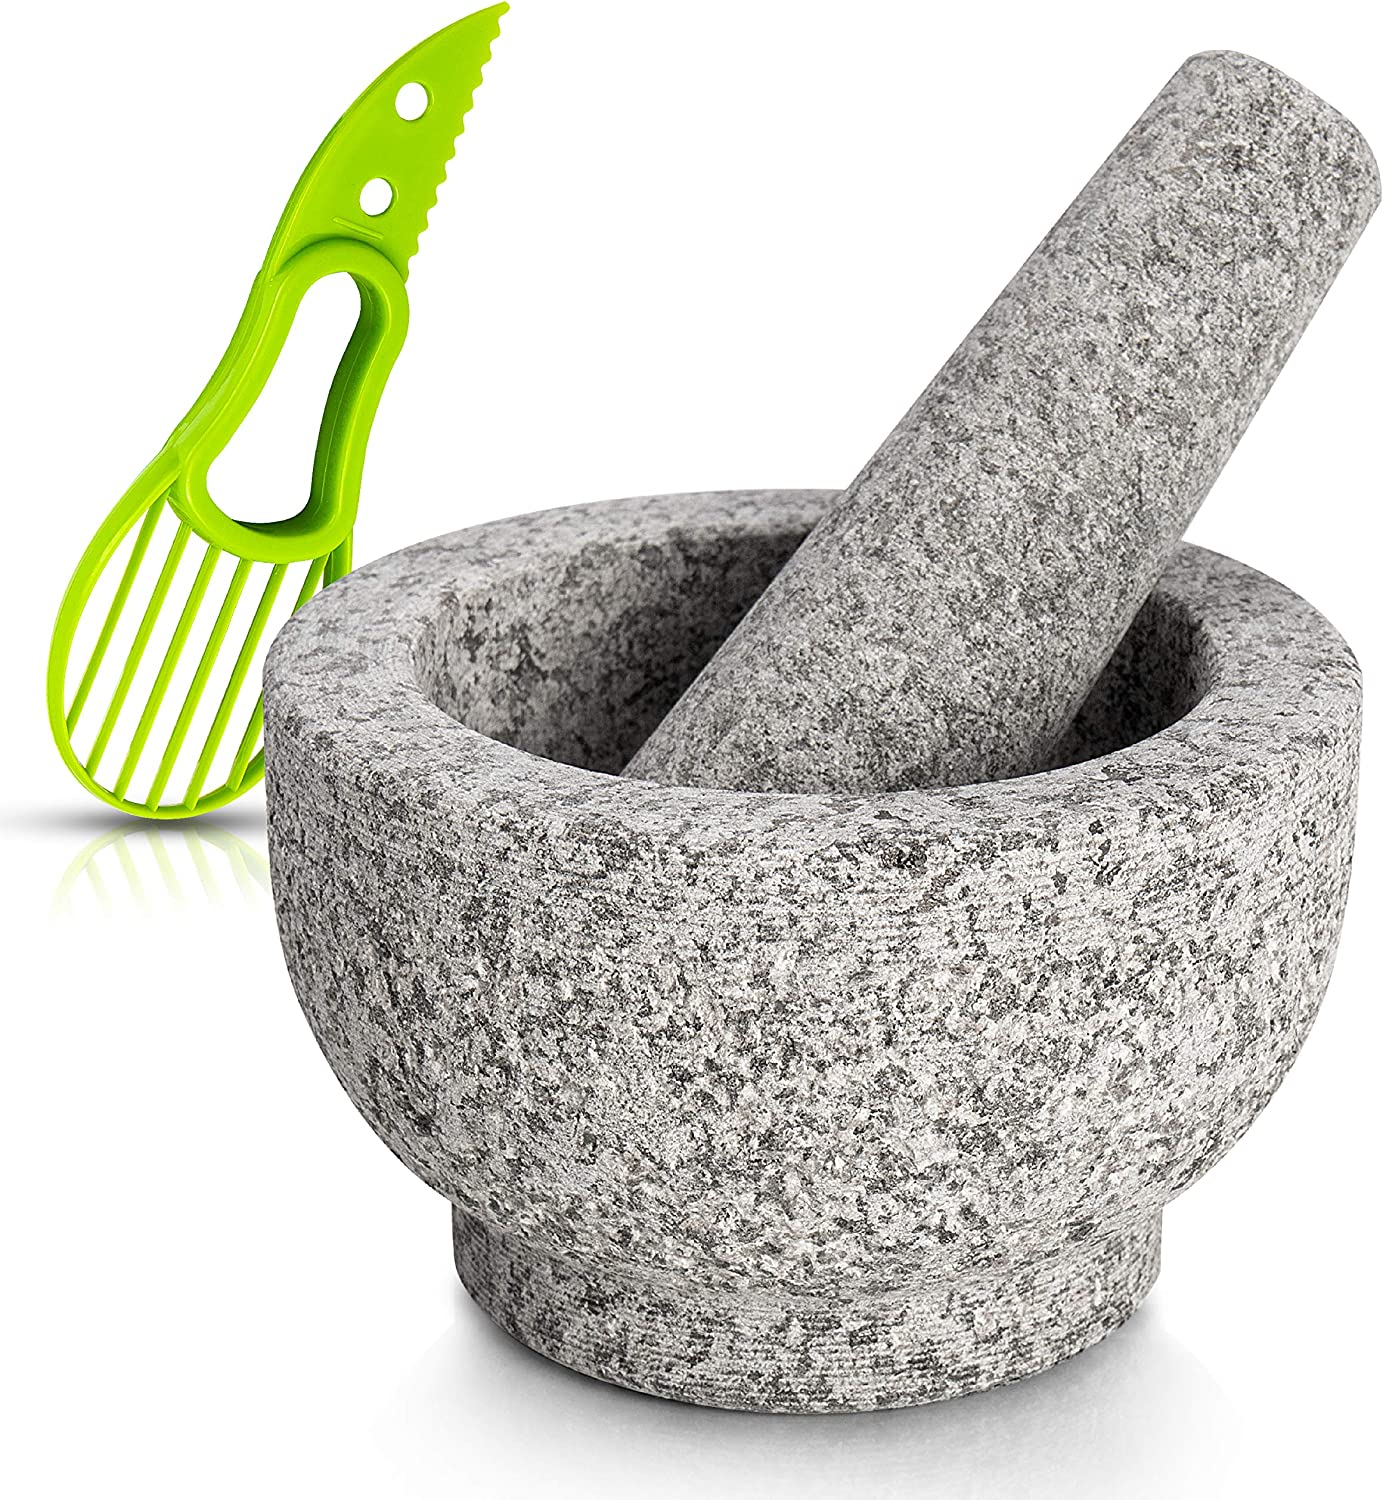 Mortar and Pestle Set Made of 100% Granite for the Kitchen Make Food Grinder and Serve Dishes Right At The Table Beautifully with Avocado Slicer.- Pitted Granite